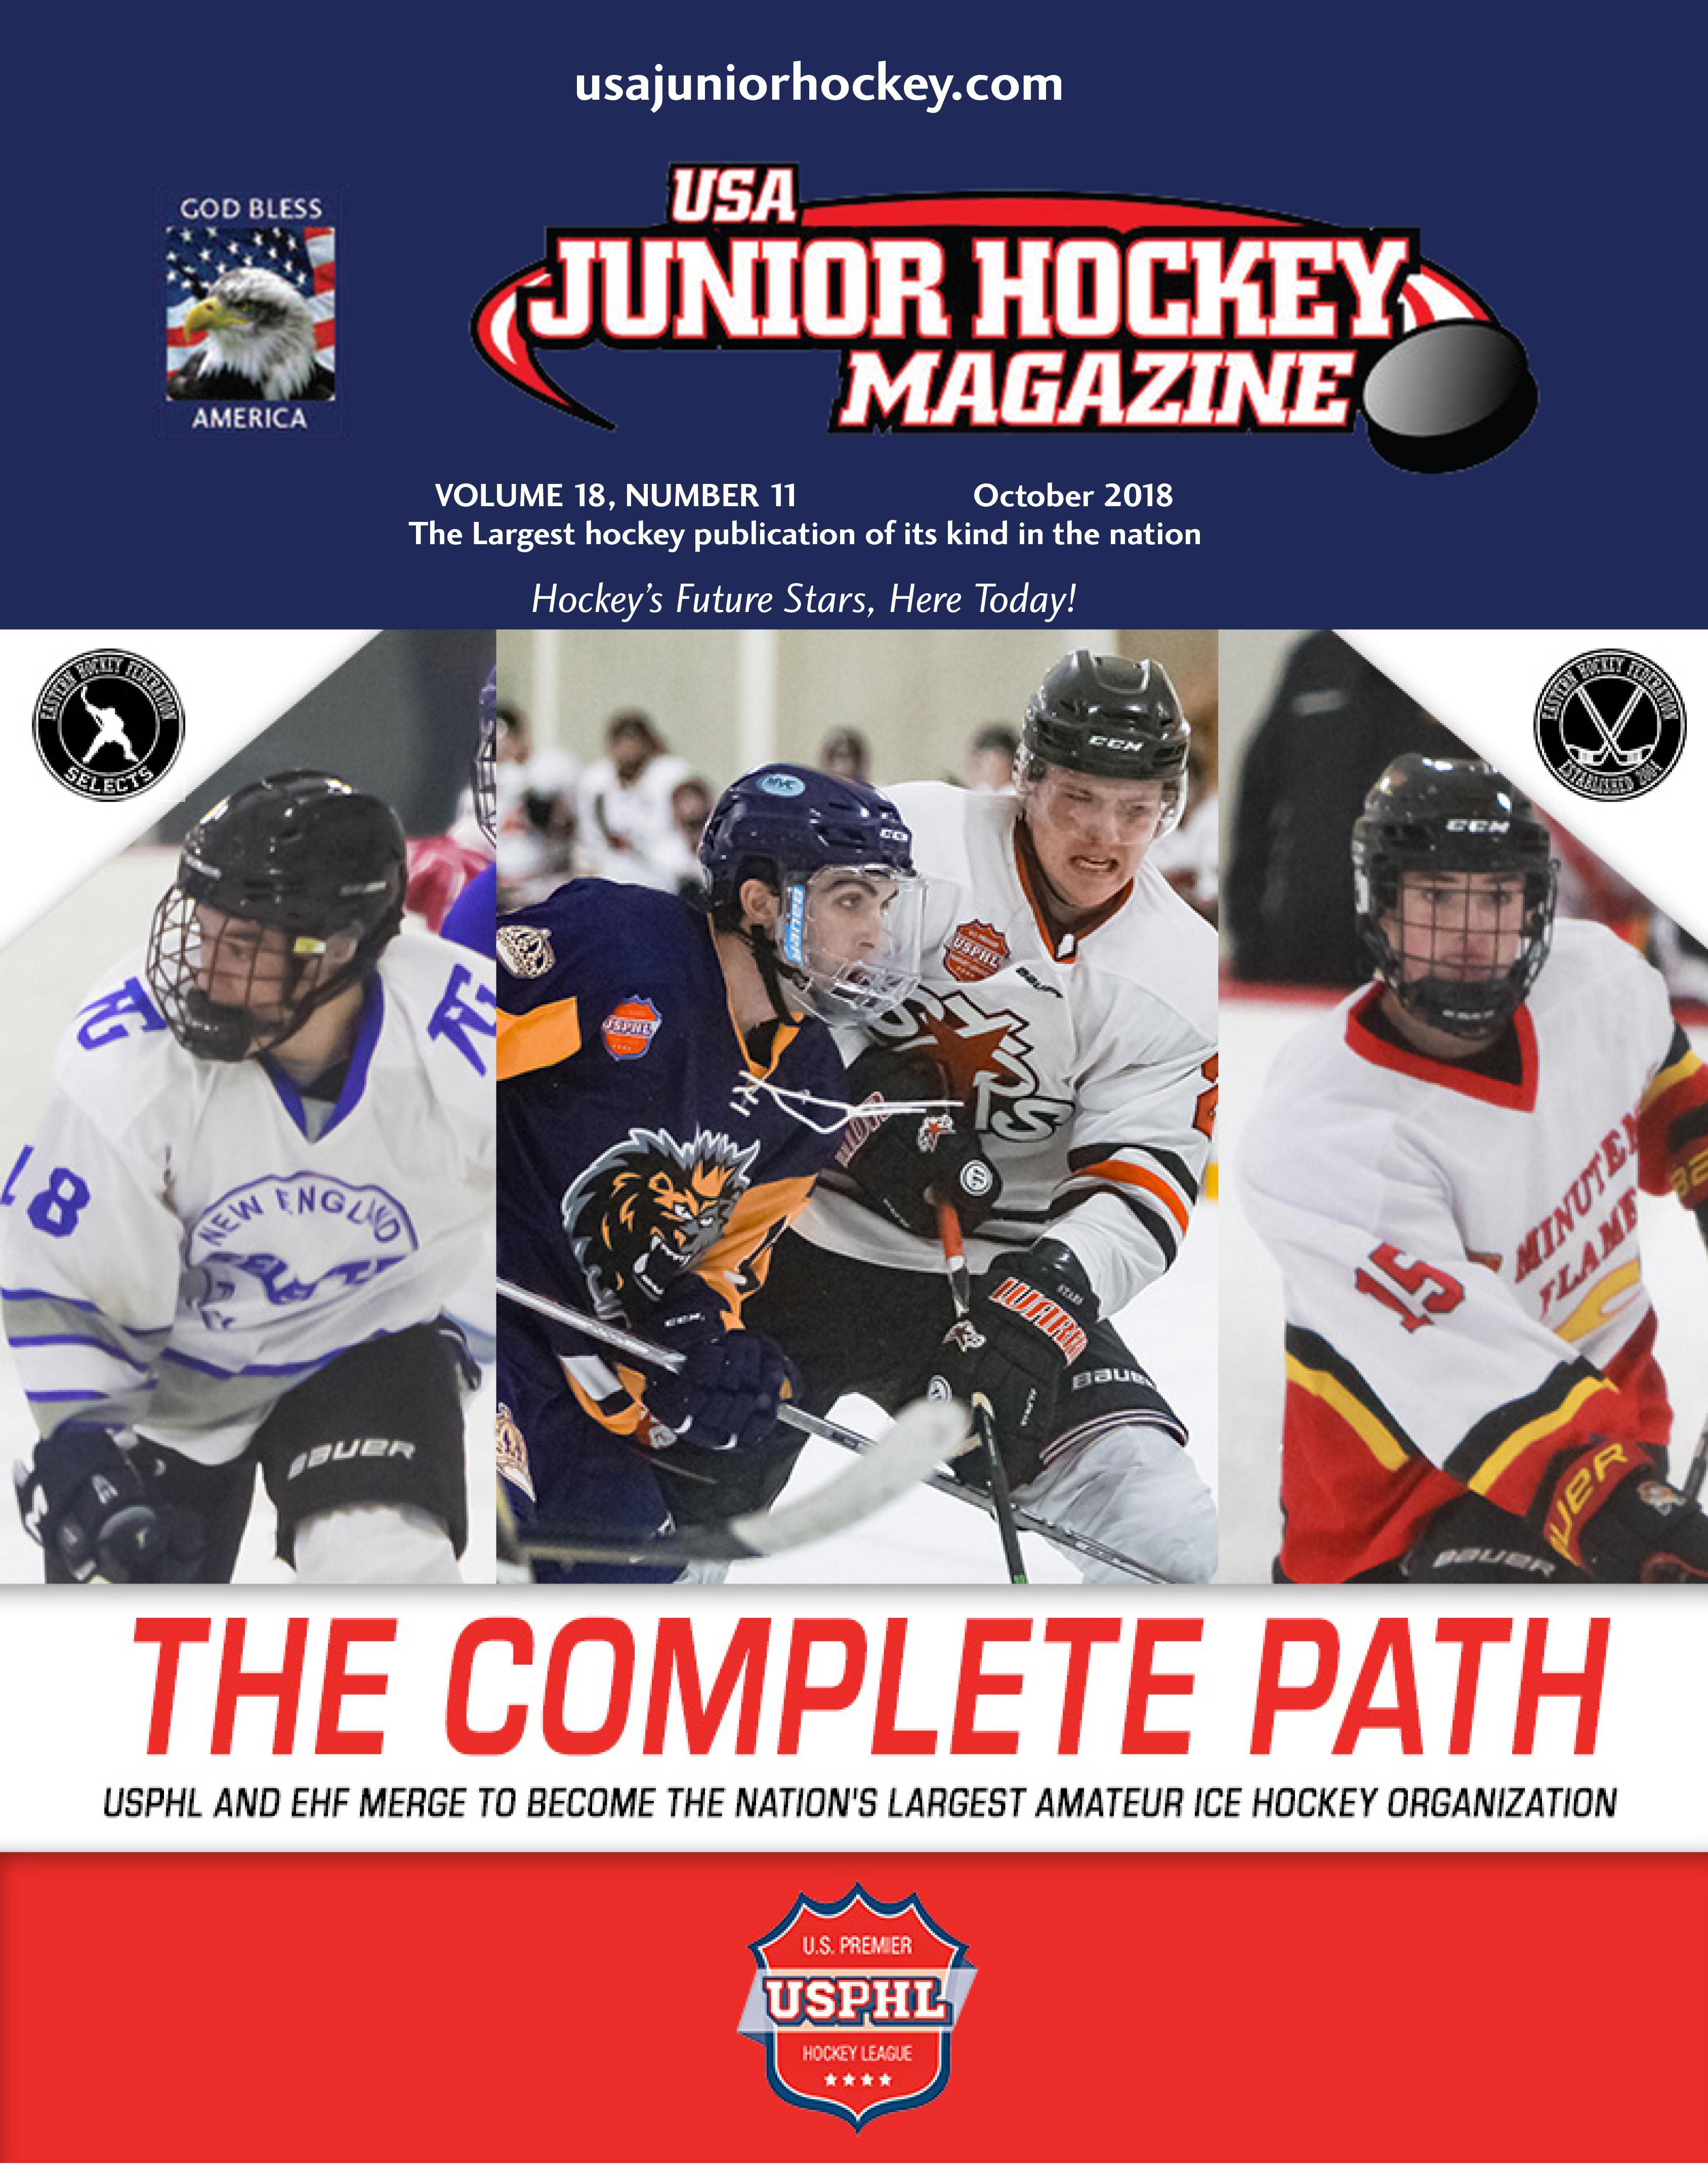 Usa Junior Hockey Magazine Features The Usphl The Complete Path